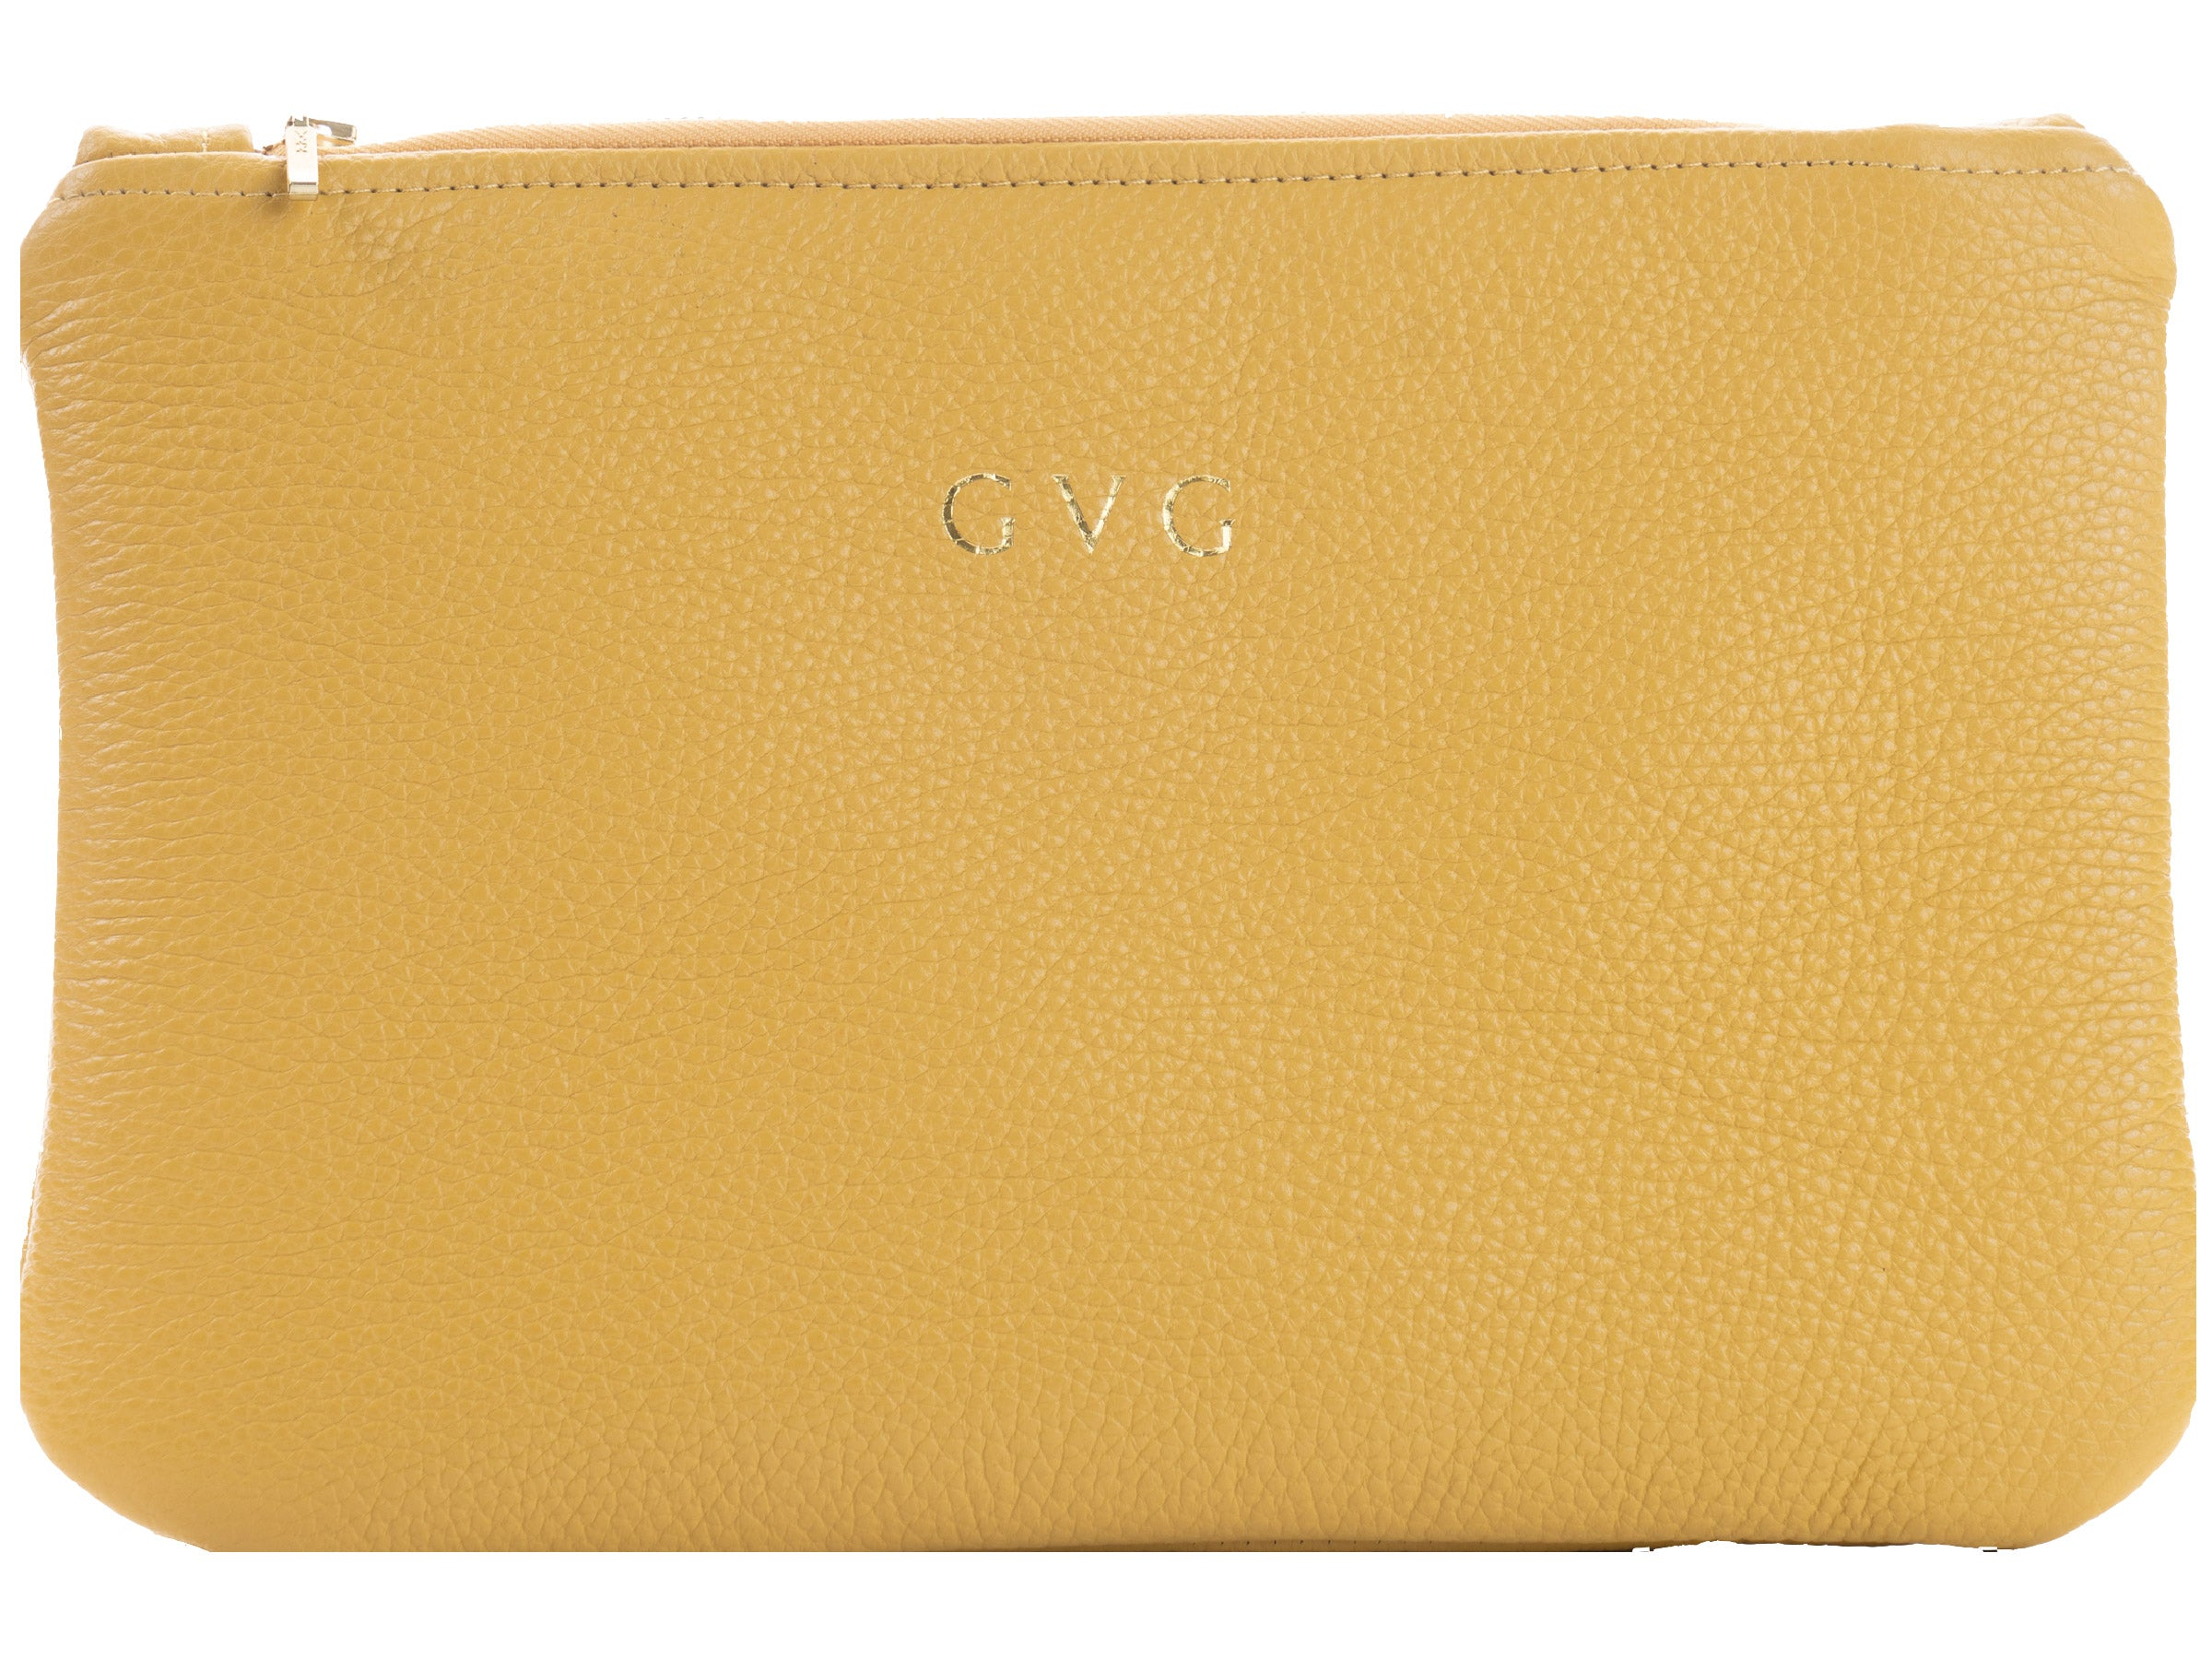 Grace Clutch Bag - Yellow